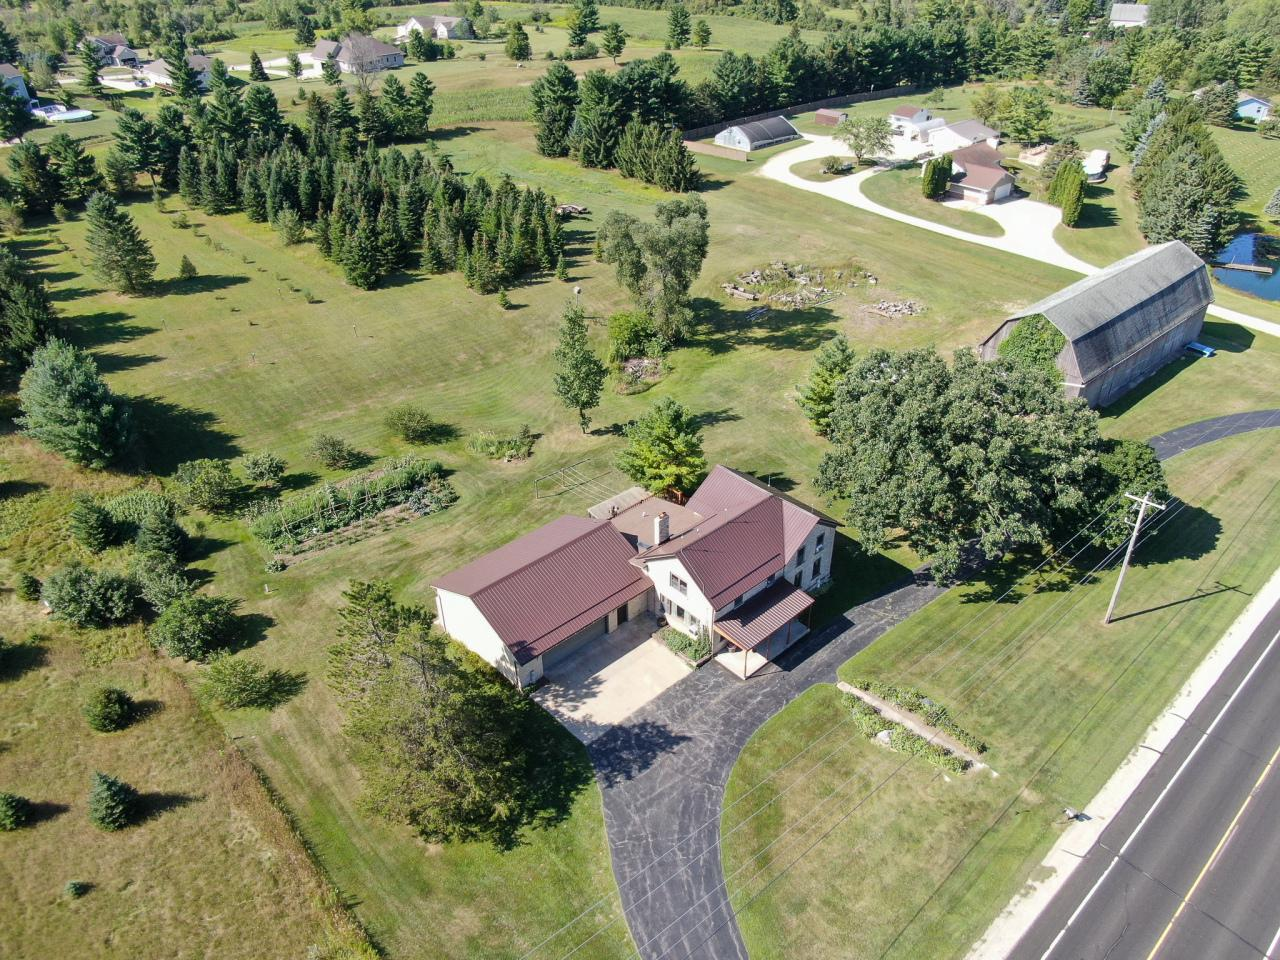 Beautiful, spacious, restored cream city brick farm house on 4.55 acres w/a 2 story barn is a must see!  Barn (120 x 40') used for seasonal storage  brings in approx. $3,000 for winter storage.  Owners have hosted a wedding on barn's upper level.  Custom built cabinets, solid oak doors, wood trim spindles, staircases & two-tone HWF's. Walk the land to appreciate the mature trees, perennial flower gardens, fruit trees, organic vegetable gardens & PRIVACY!  Updated triple pane Weather Shield windows, thick insulation, new shingle & steel roof in 2017. 3 zone hydronic heat furnaces for wood/gas.  Attached 2.75 car GA w/LL walk out basement shop. Main level MBR w/room to add MBA.  Large open KIT, LR, dining areas w/a full BA and 25 x 5 ft. main level laundry/mud room.  Horses allowed.